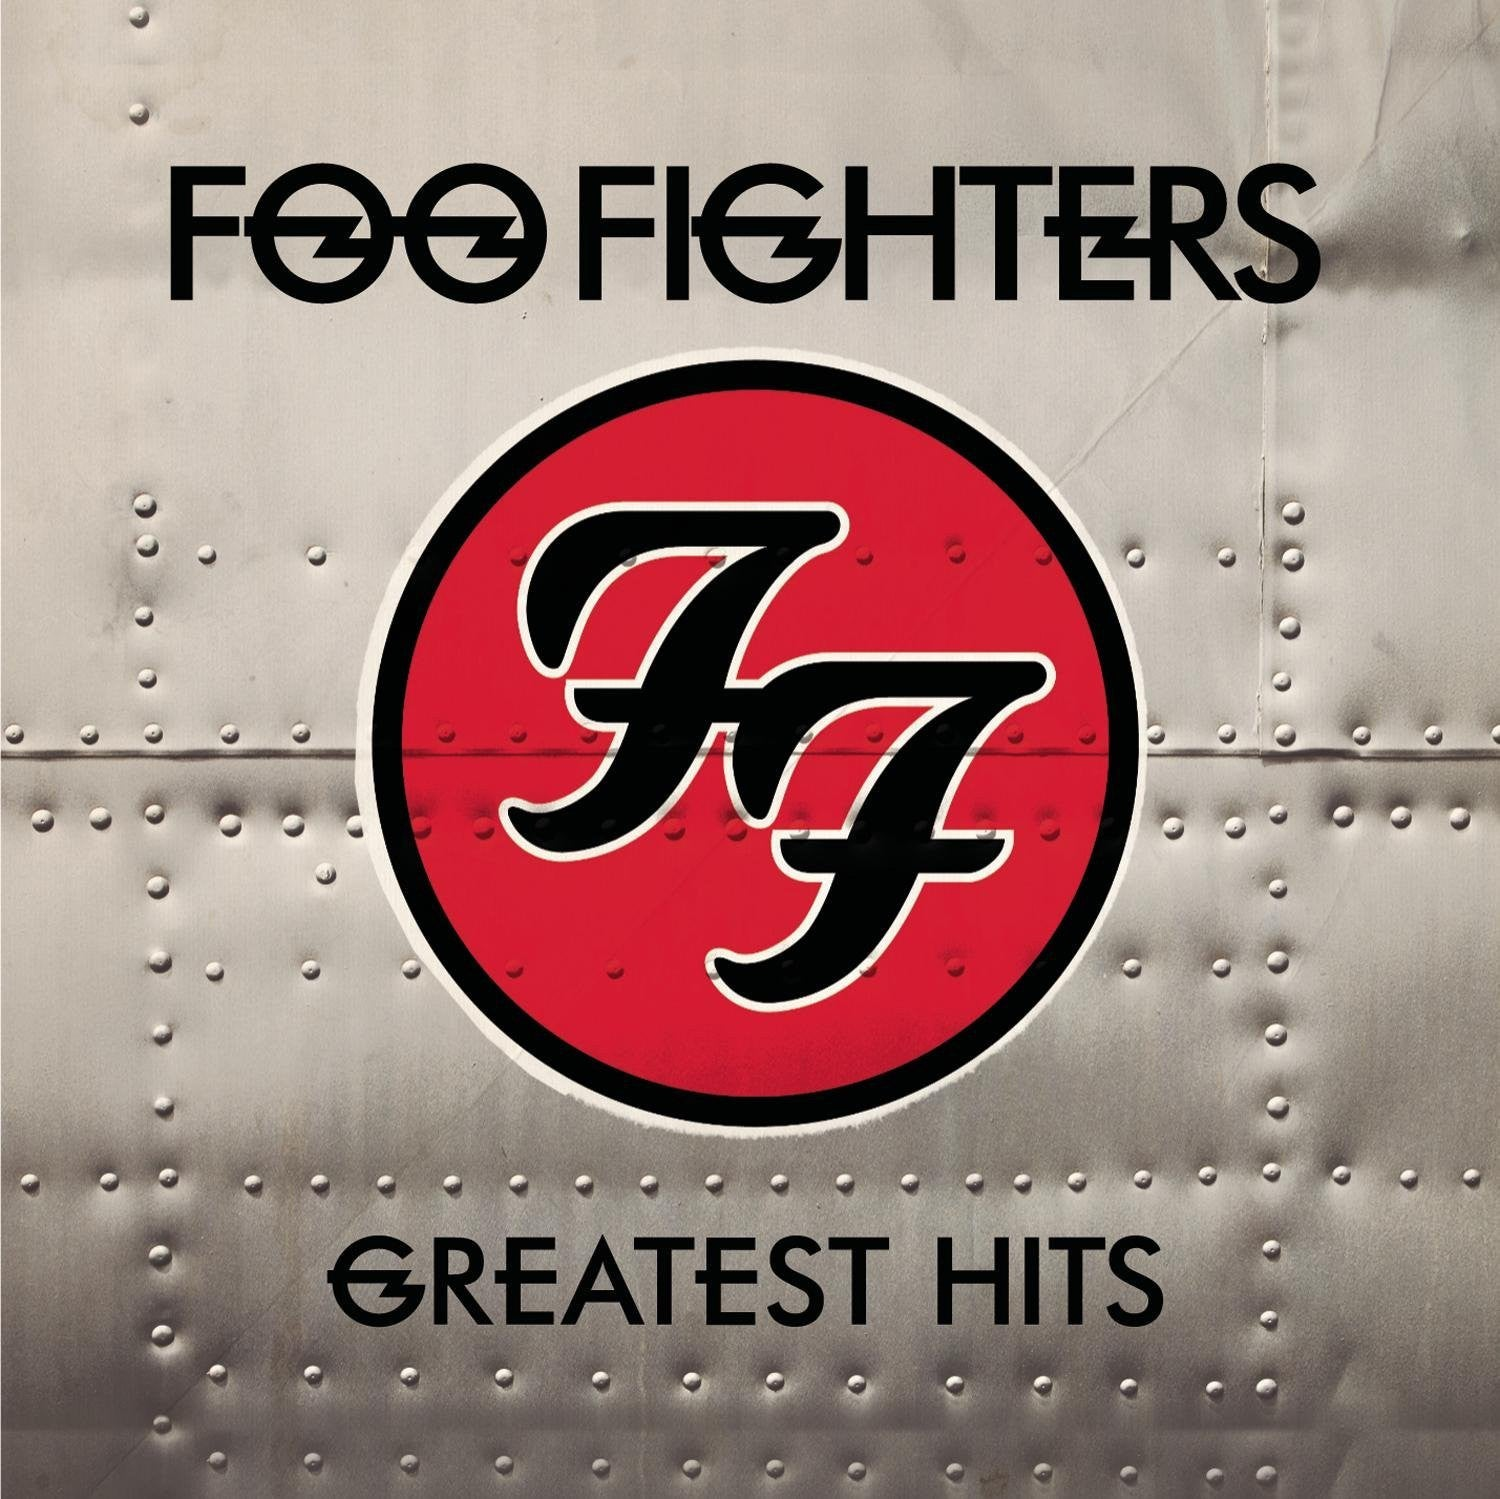 Foo Fighters - Greatest Hits (Vinyl 2LP Record)